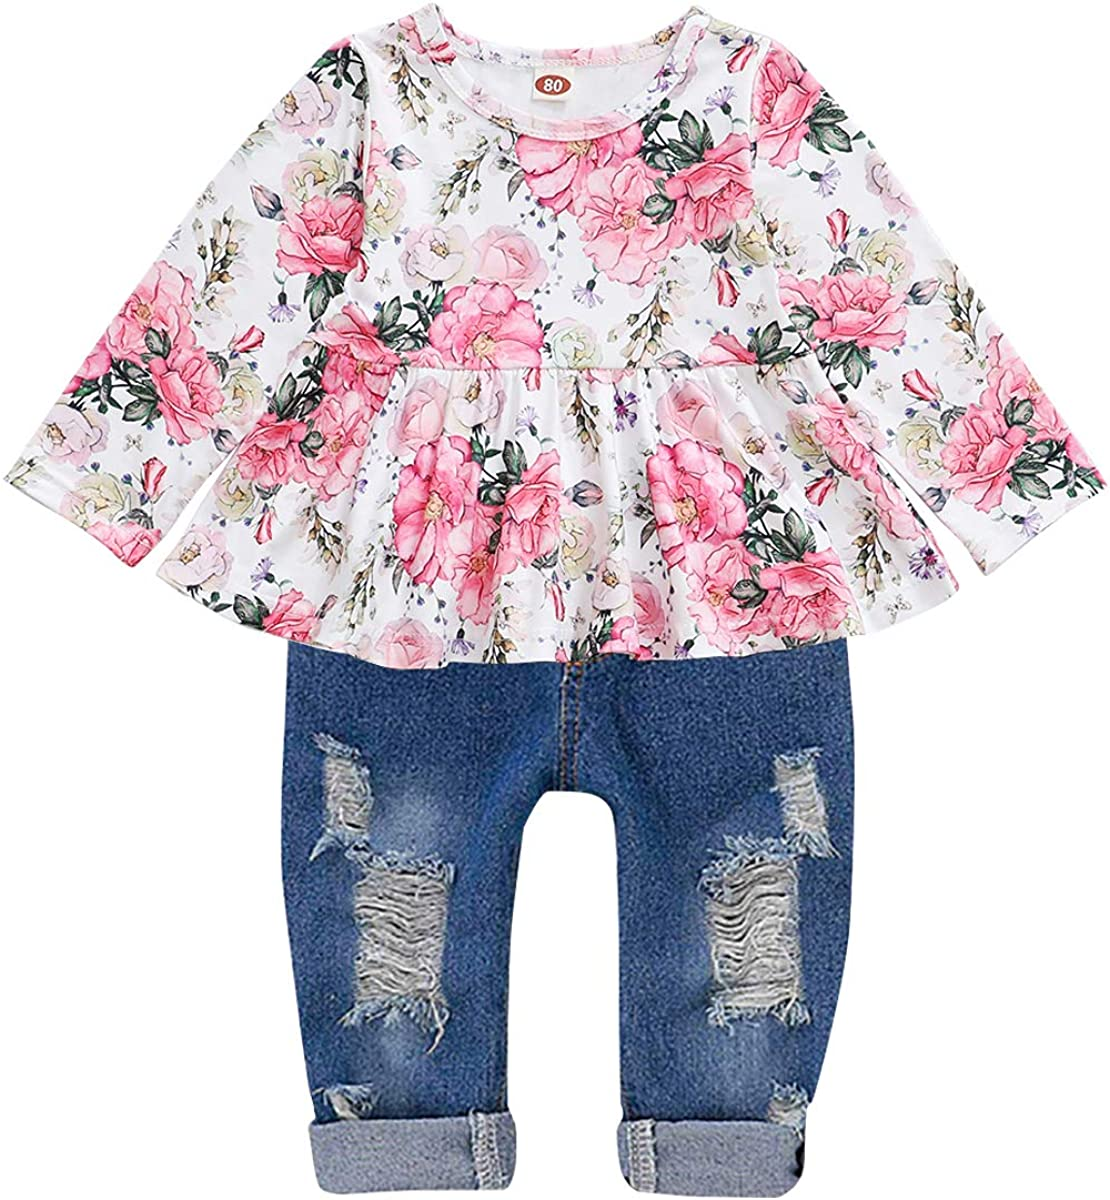 Amazon.com: CARETOO Girls Clothes Outfits, Cute Baby Girl Floral Long  Sleeve Pant Set Flower Ruffle Top: Clothing